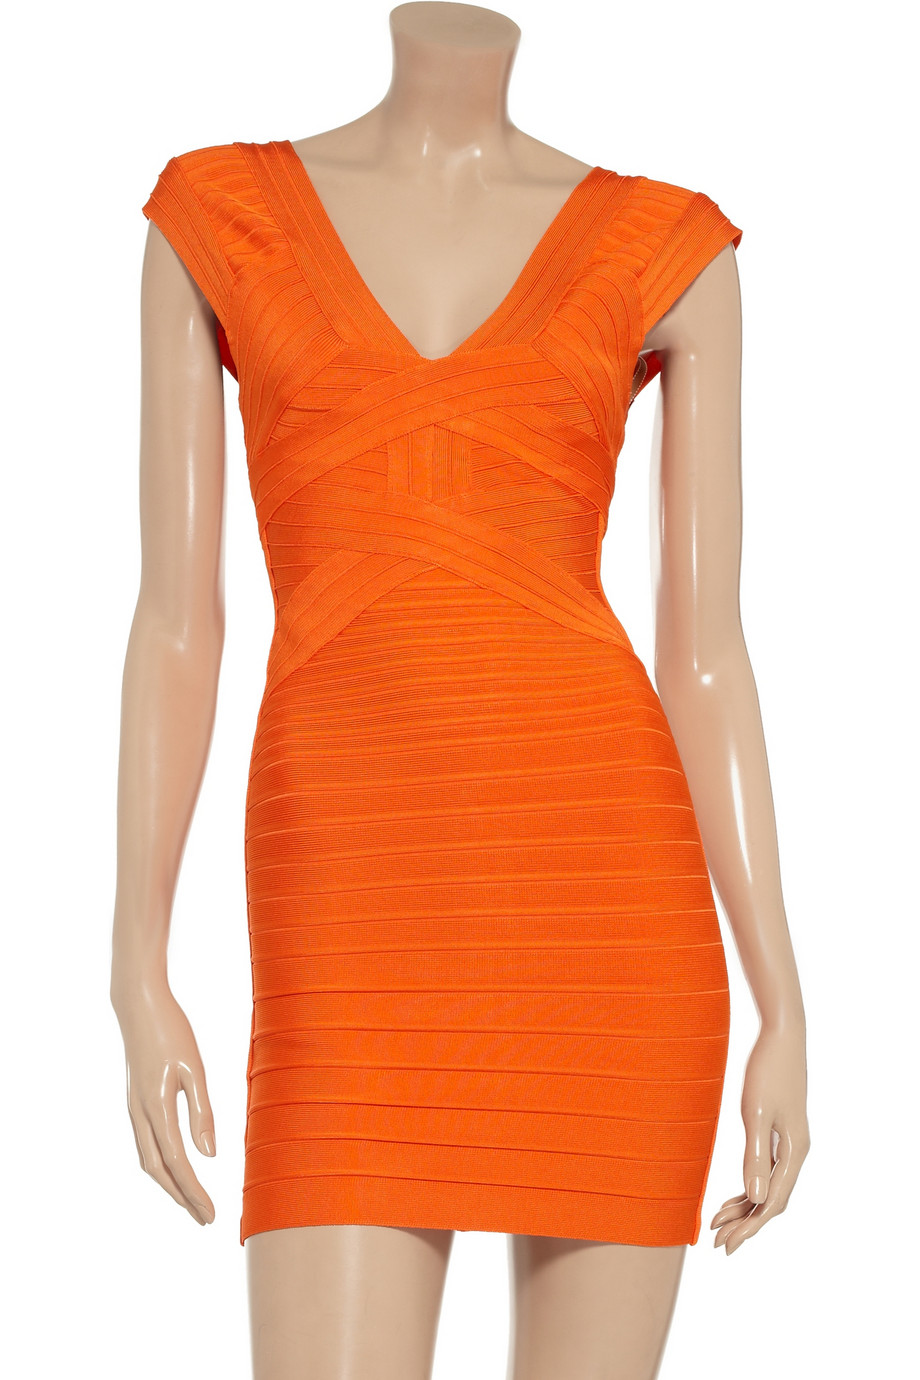 Hervu00e9 Lu00e9ger Bandage Dress In Orange - Lyst